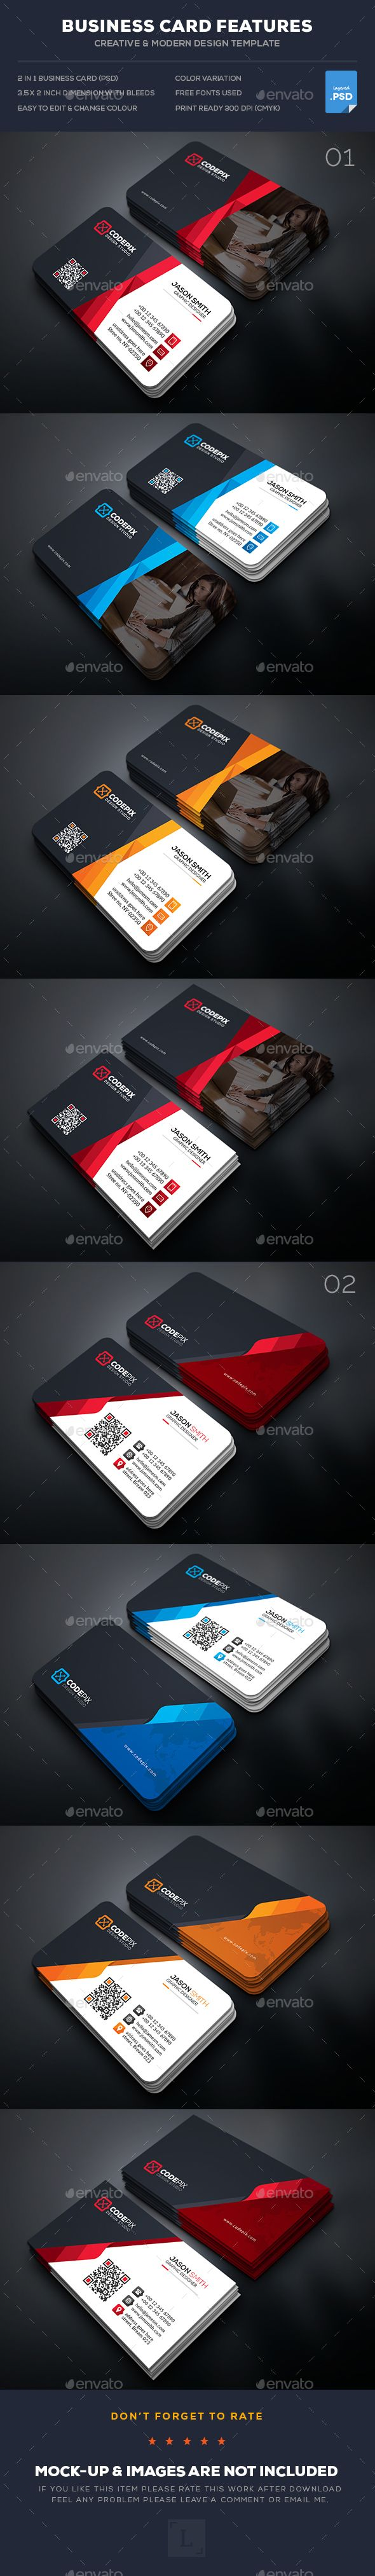 1943 best business card images on pinterest